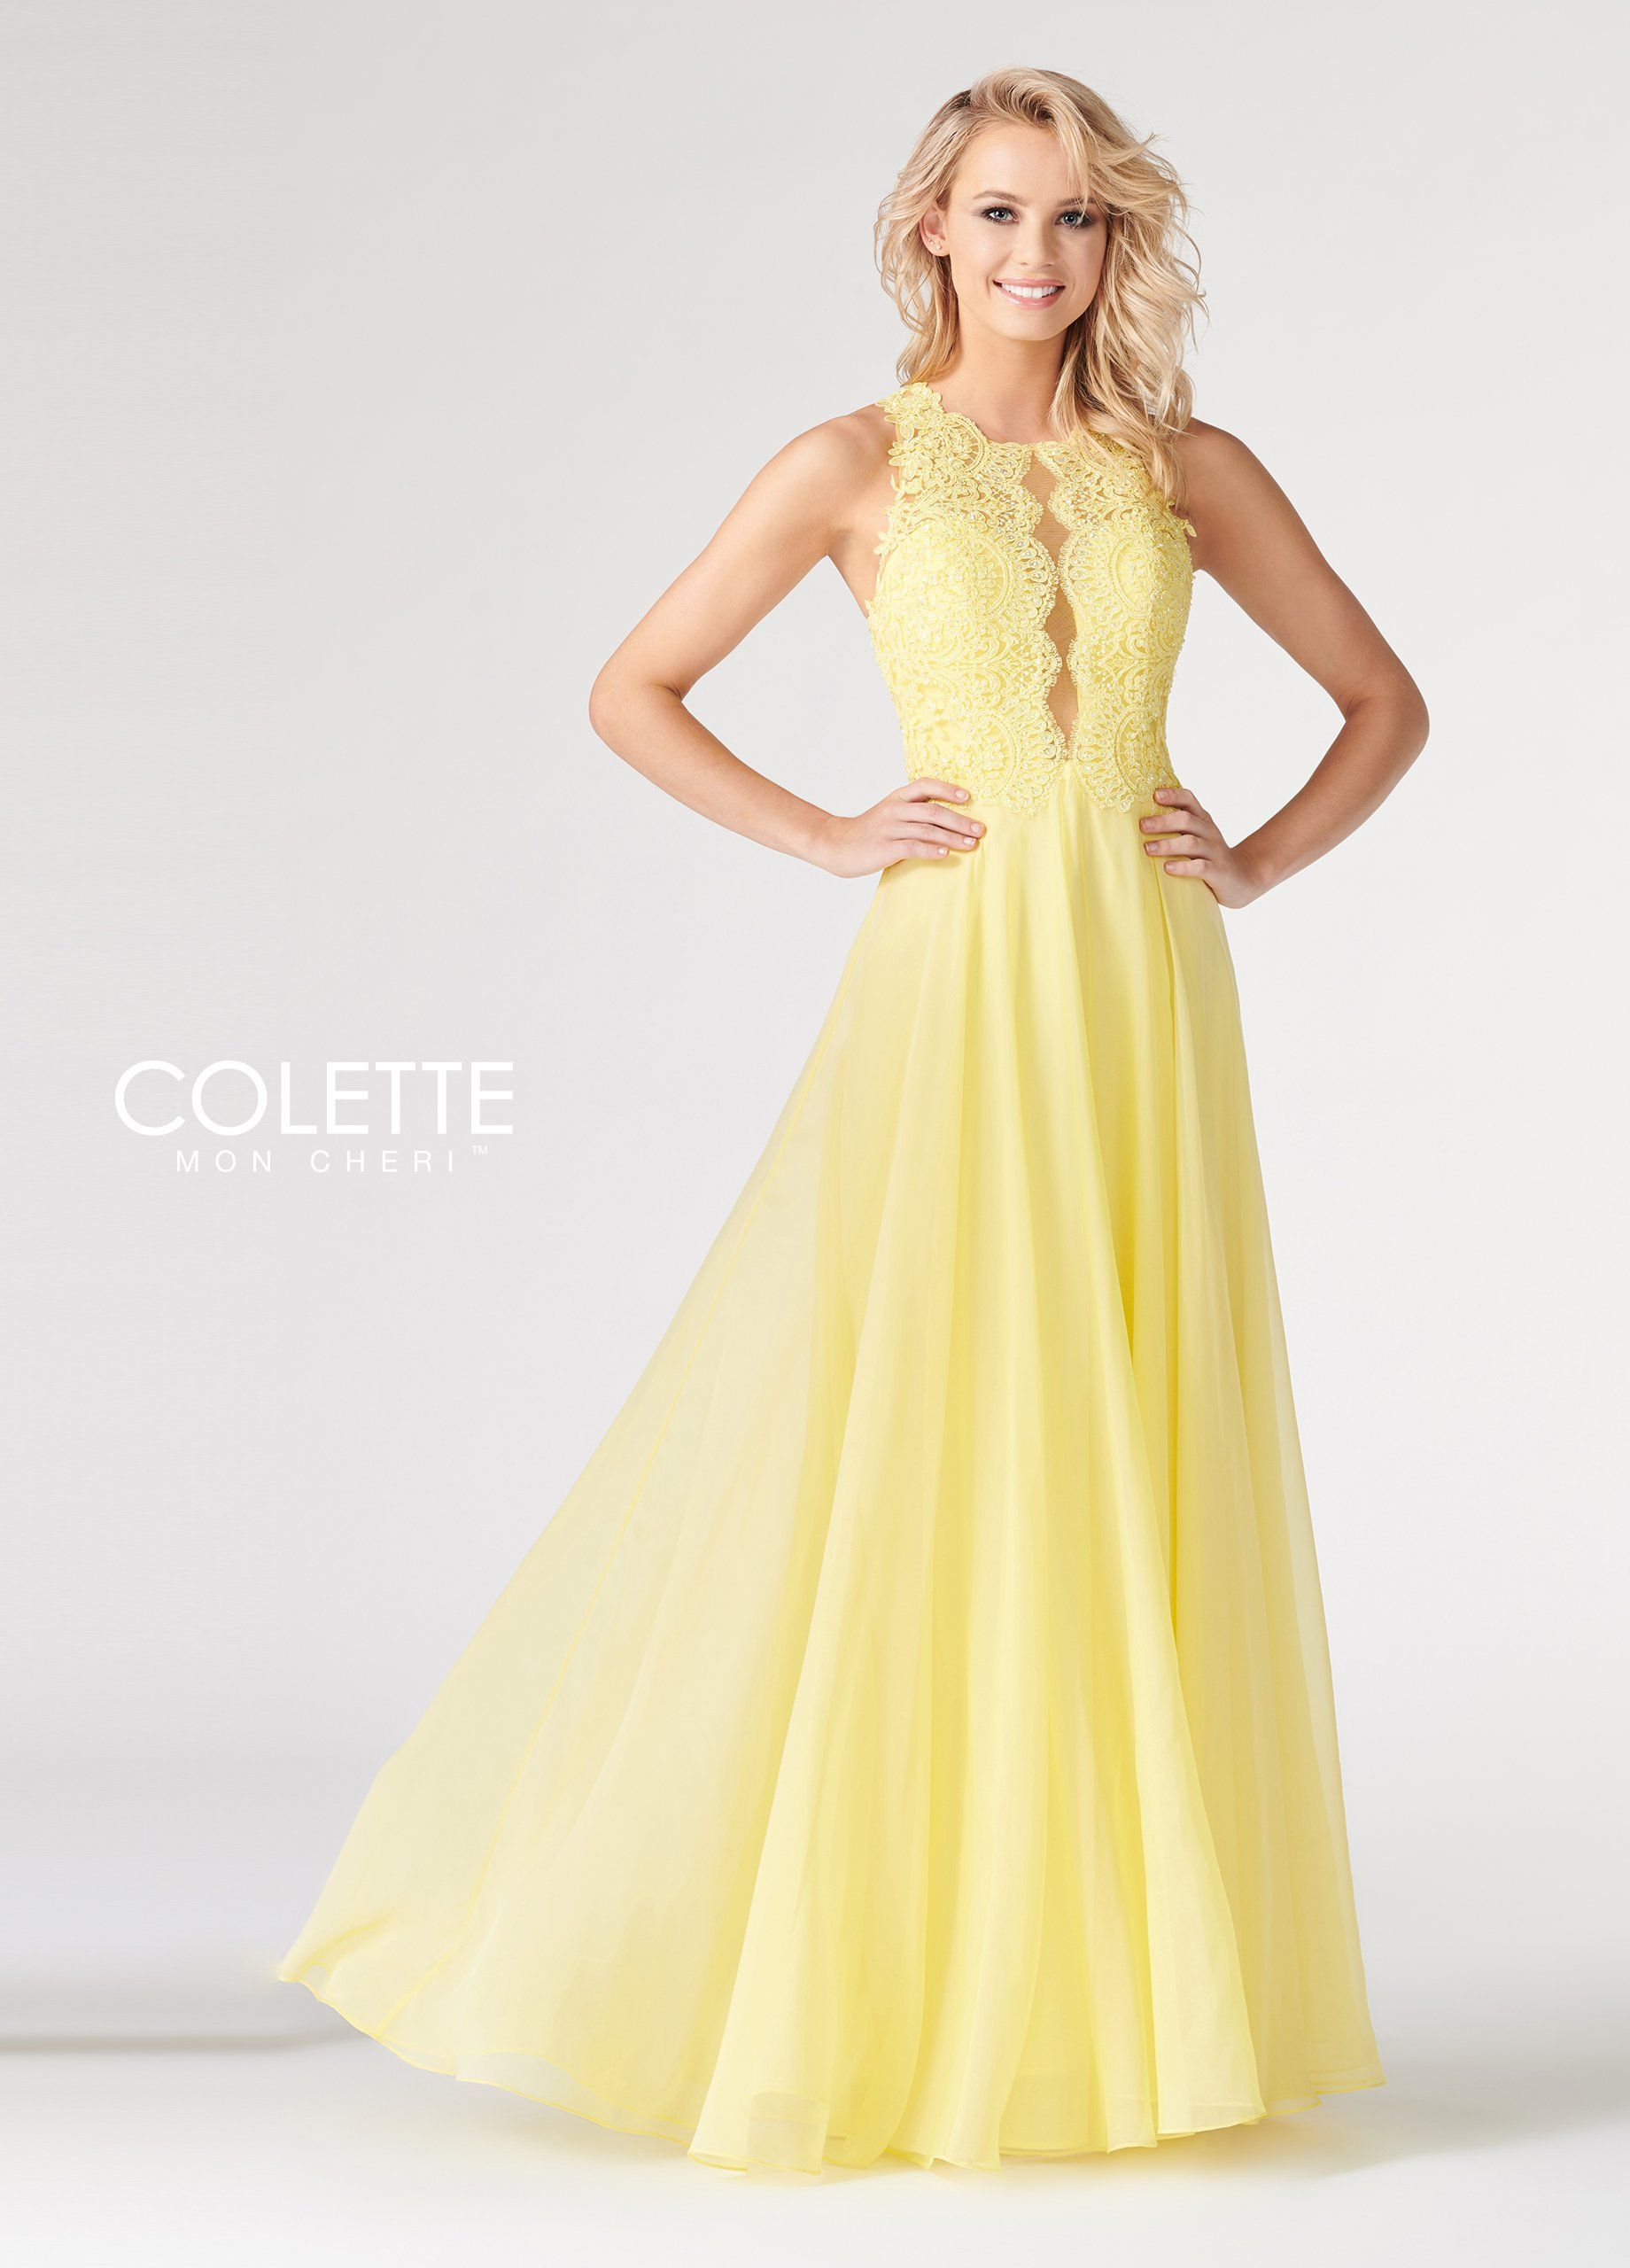 Colette Cl19829 Yellow High Neck Lace Prom Dress Size 16 Yellow Chiffon Dress Sheer Yellow Dress Dresses [ 2560 x 1840 Pixel ]